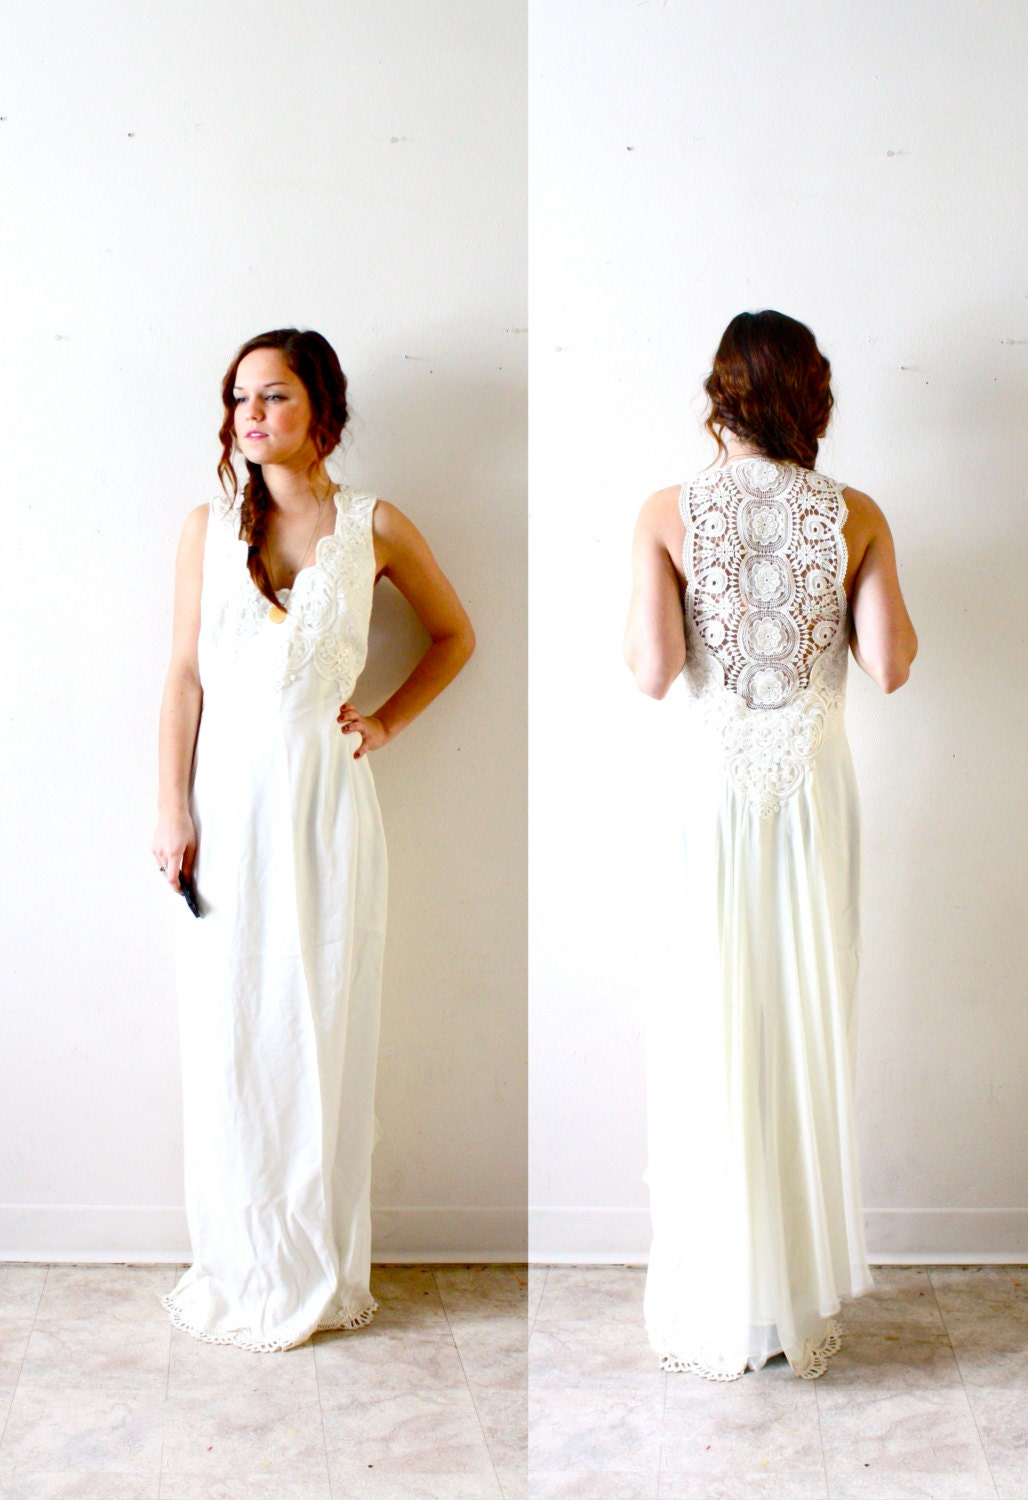 Boho Lace Wedding Dress Etsy : Vintage bohemian hippie all lace back wedding dress